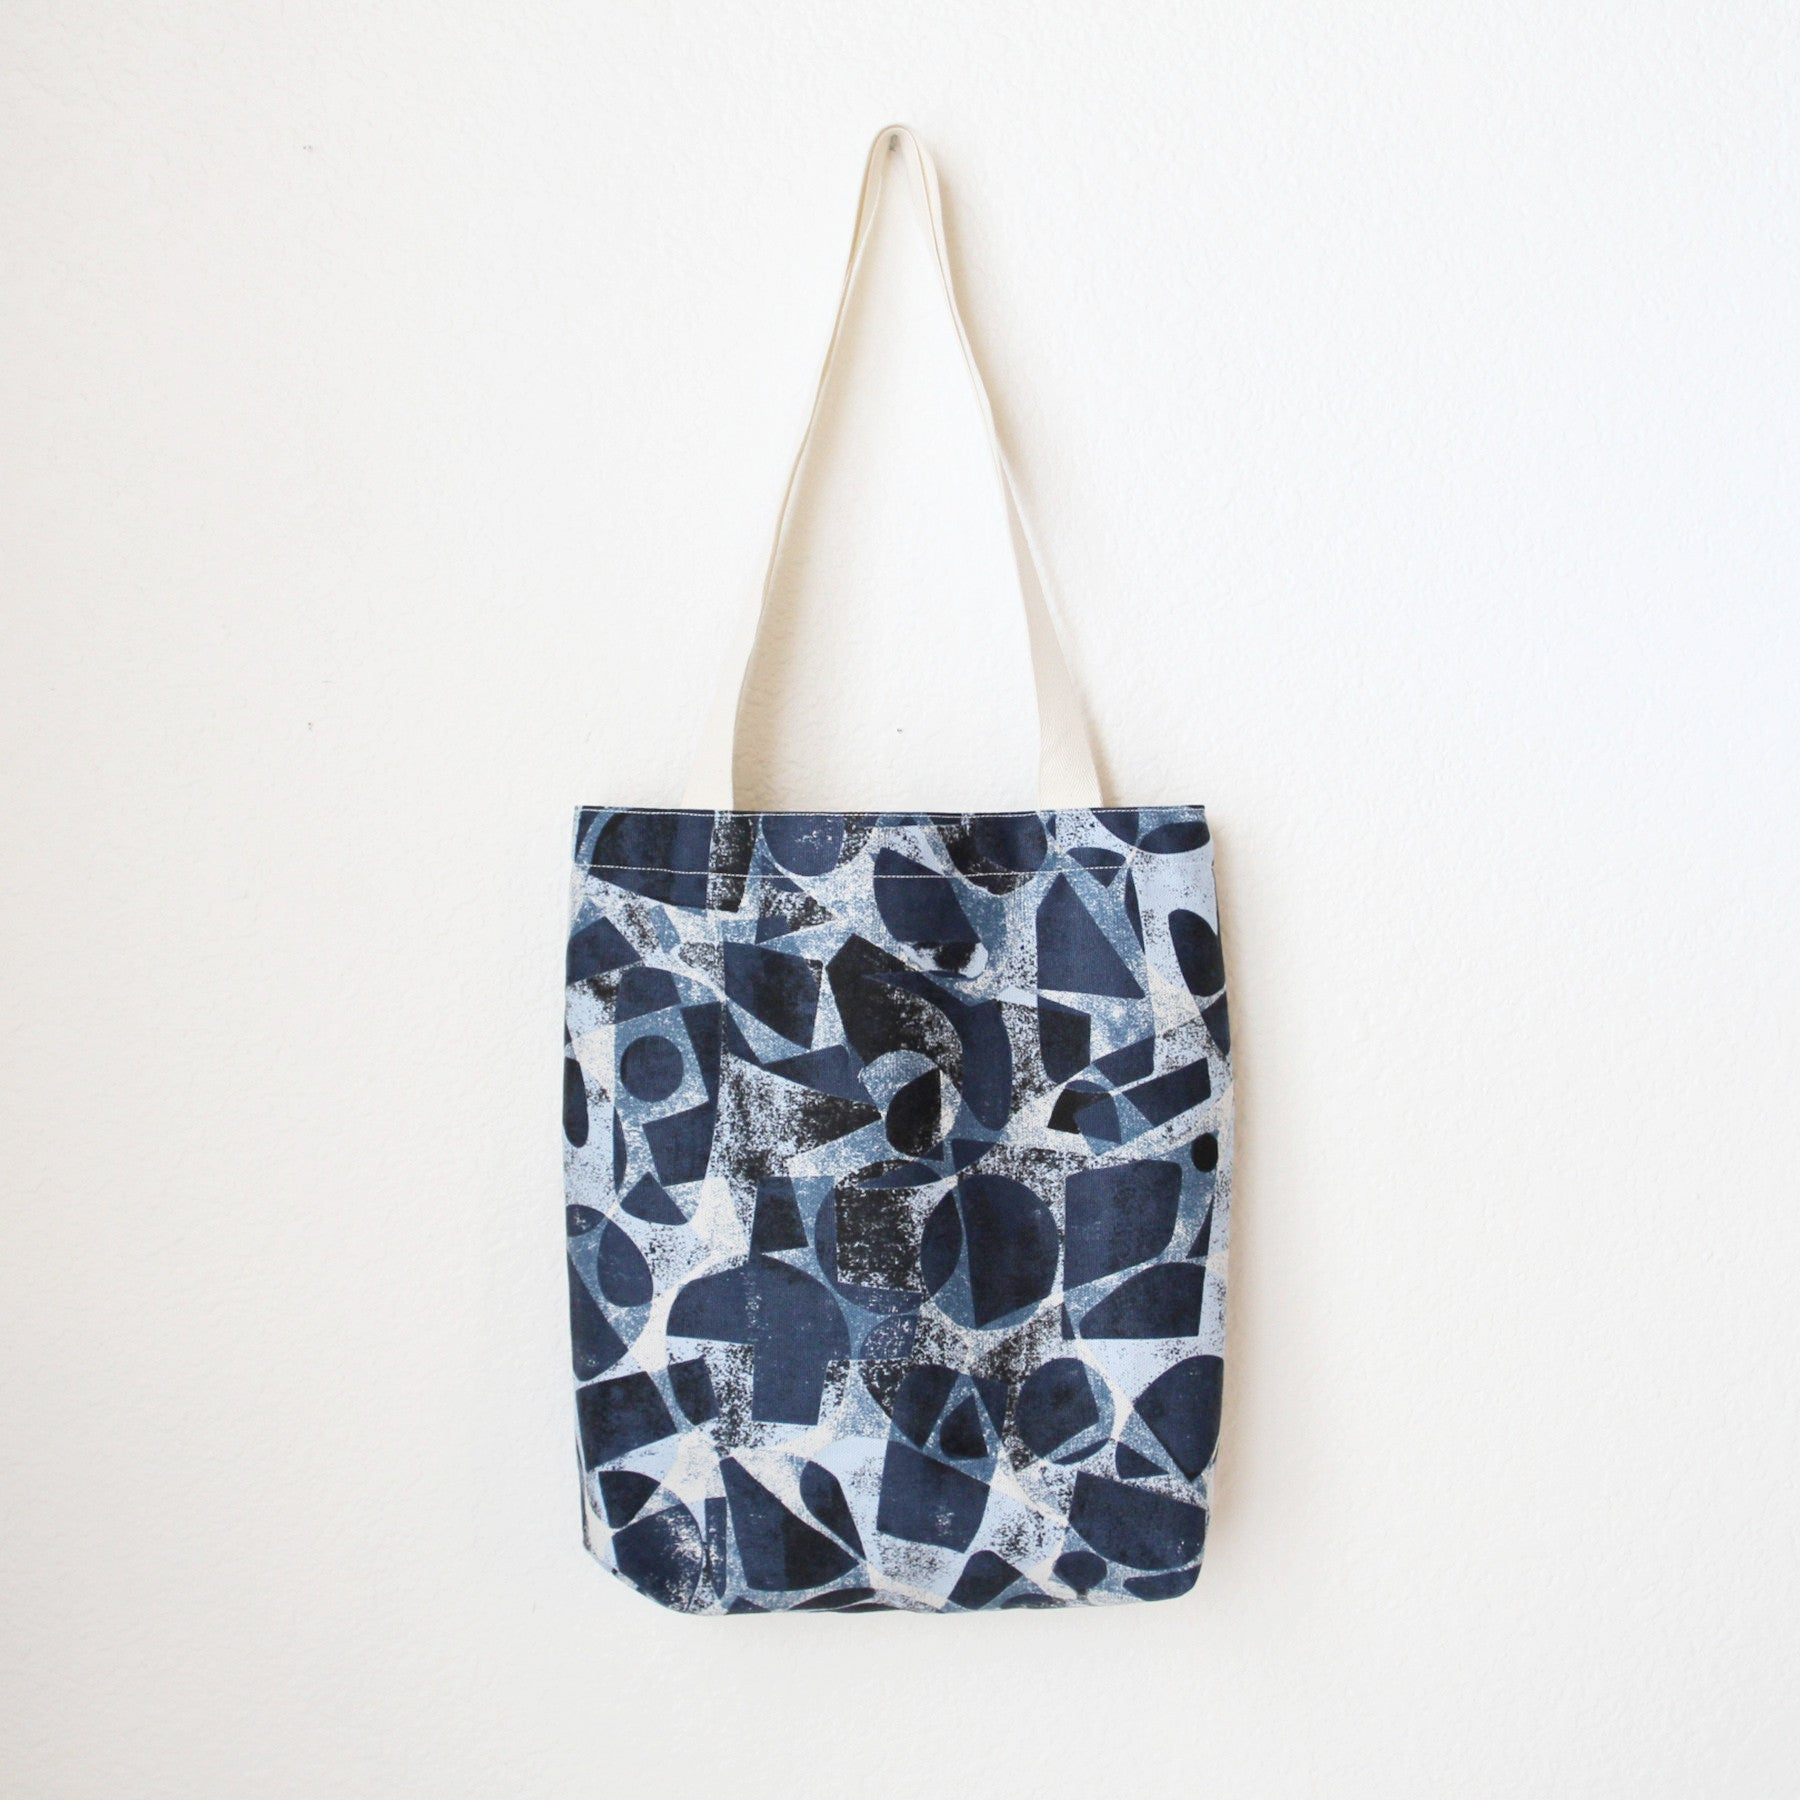 Sewing Fundamentals 101 - Tote Bag: September 3rd